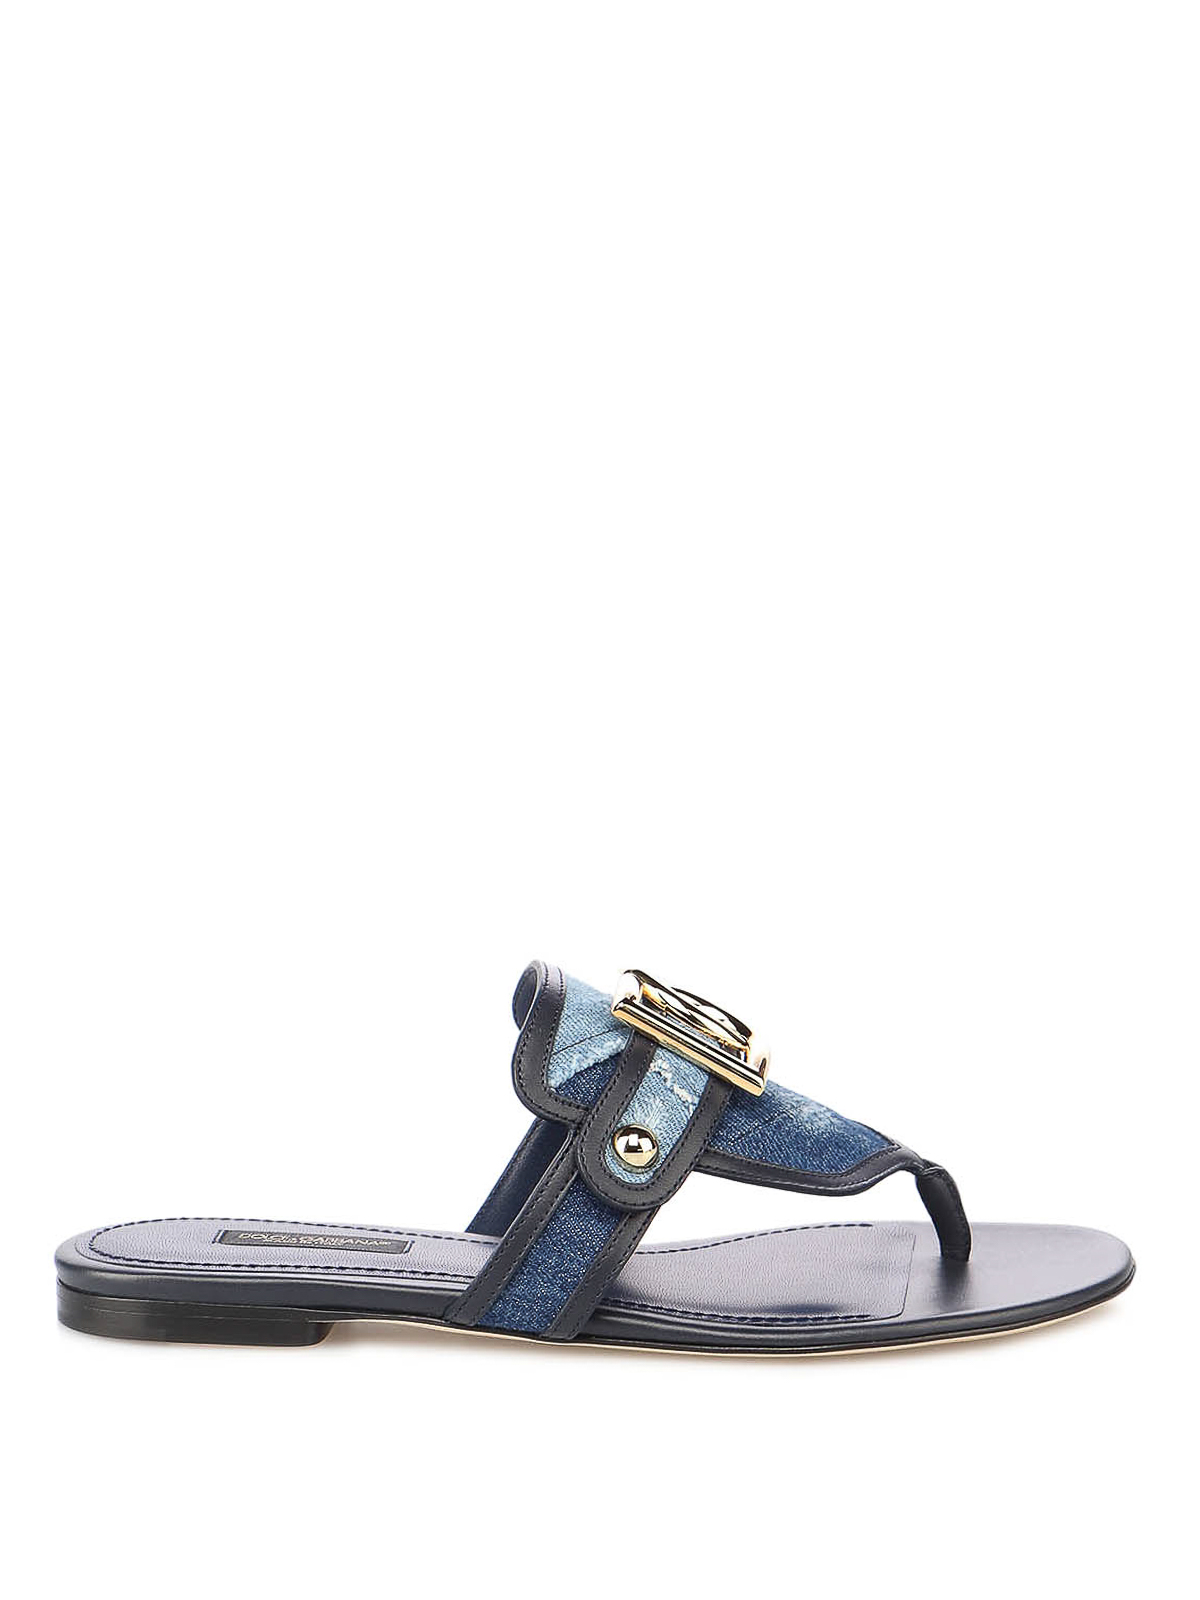 Dolce & Gabbana DENIM AND LEATHER THONG SANDALS